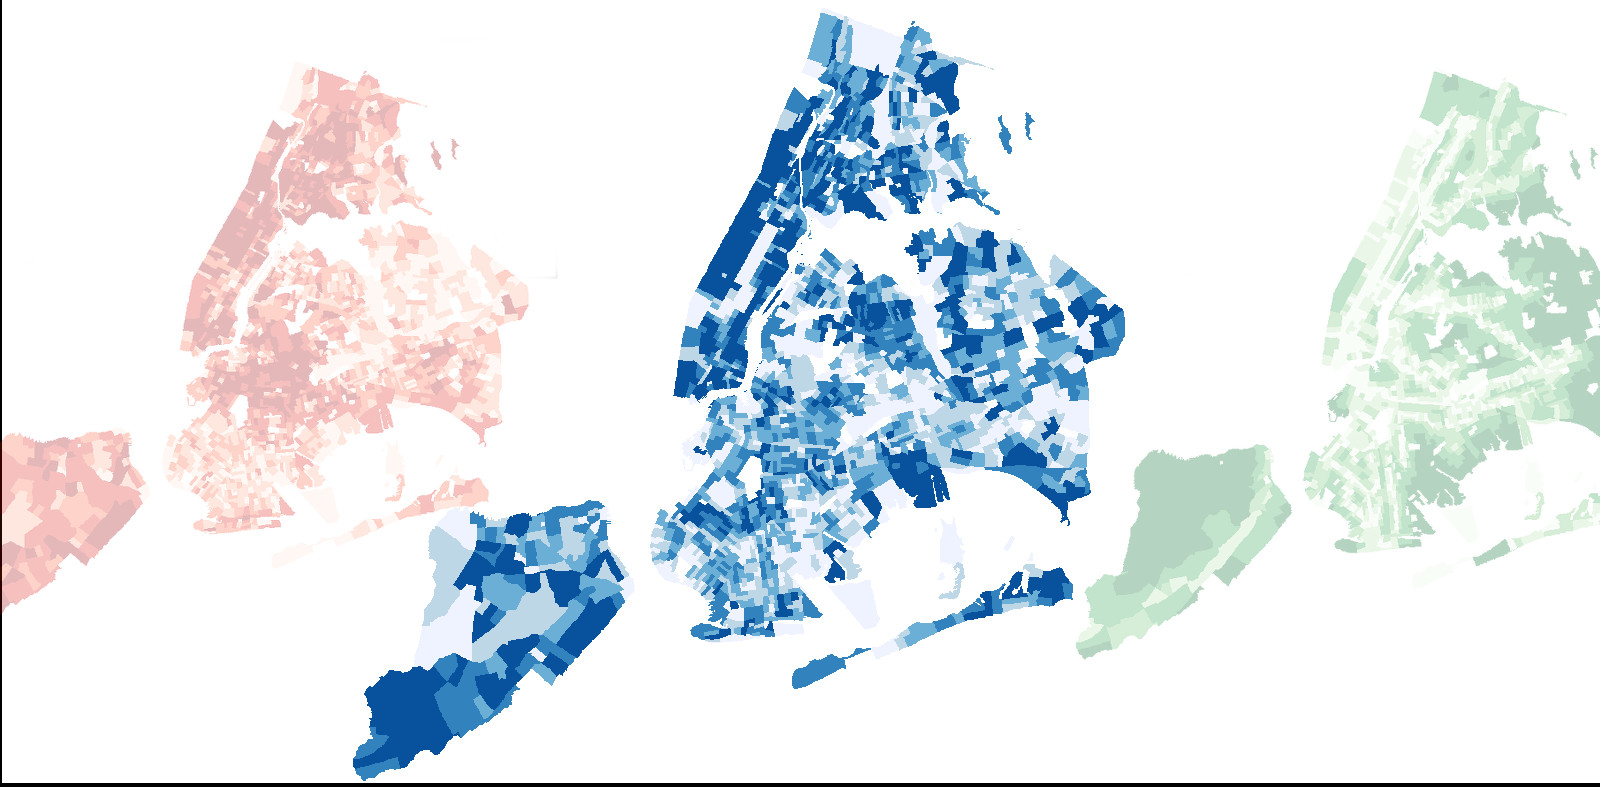 The sociodemographic, housing, & landscape characteristics associated with rat sightings in New York